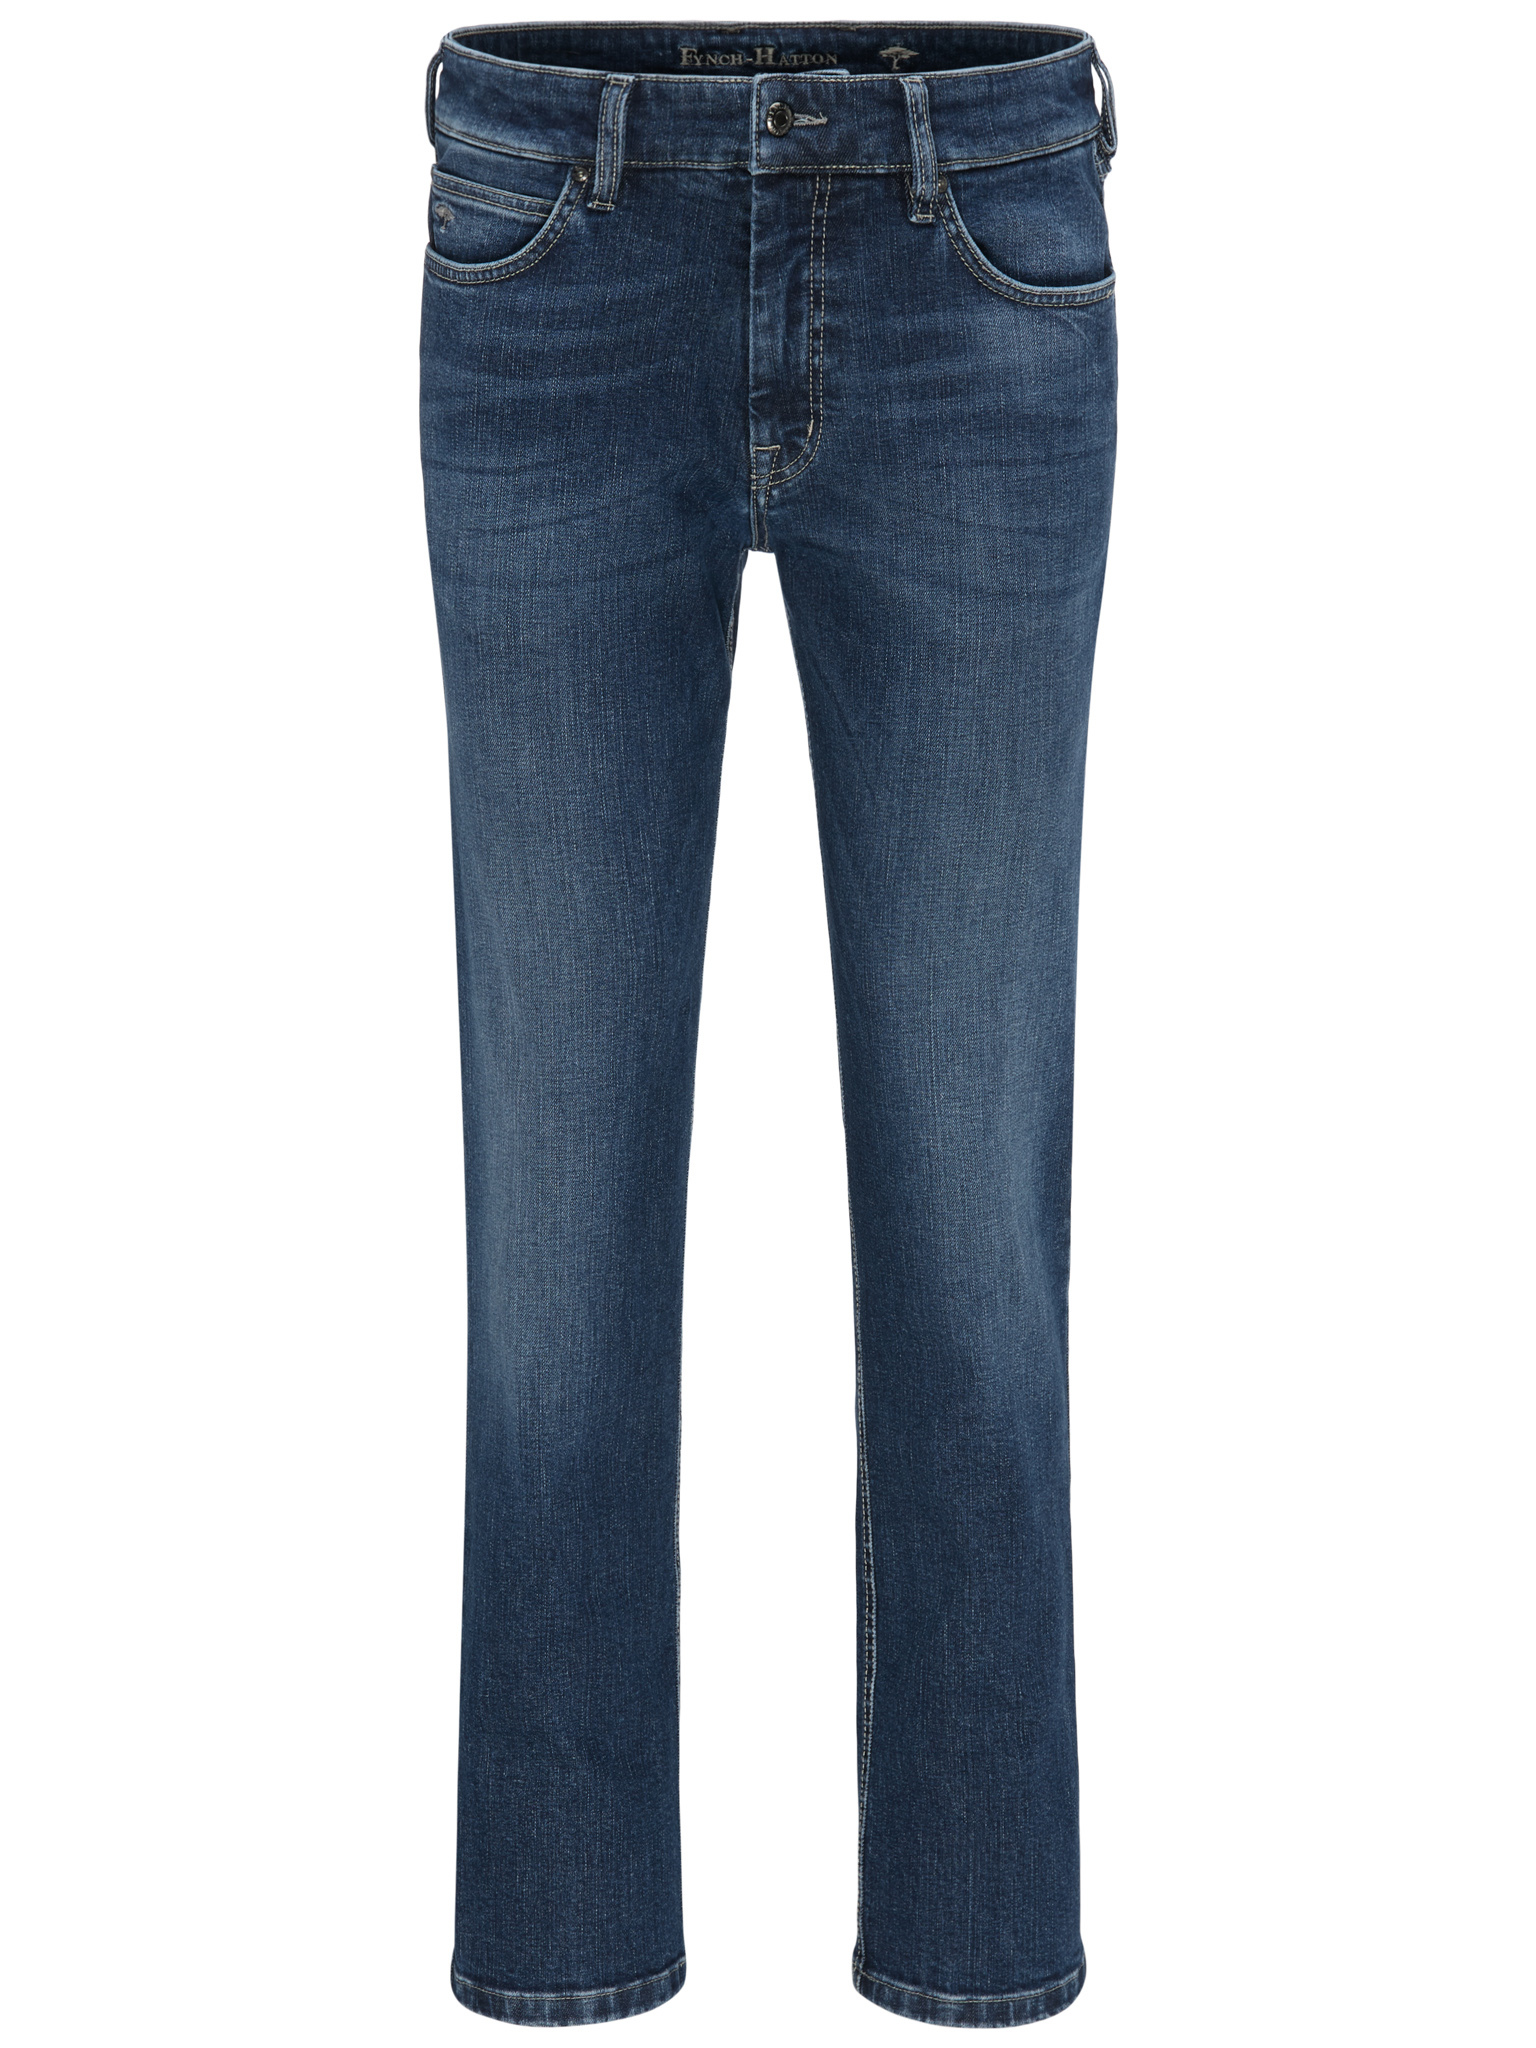 Fynch Hatton Mombasa jeans